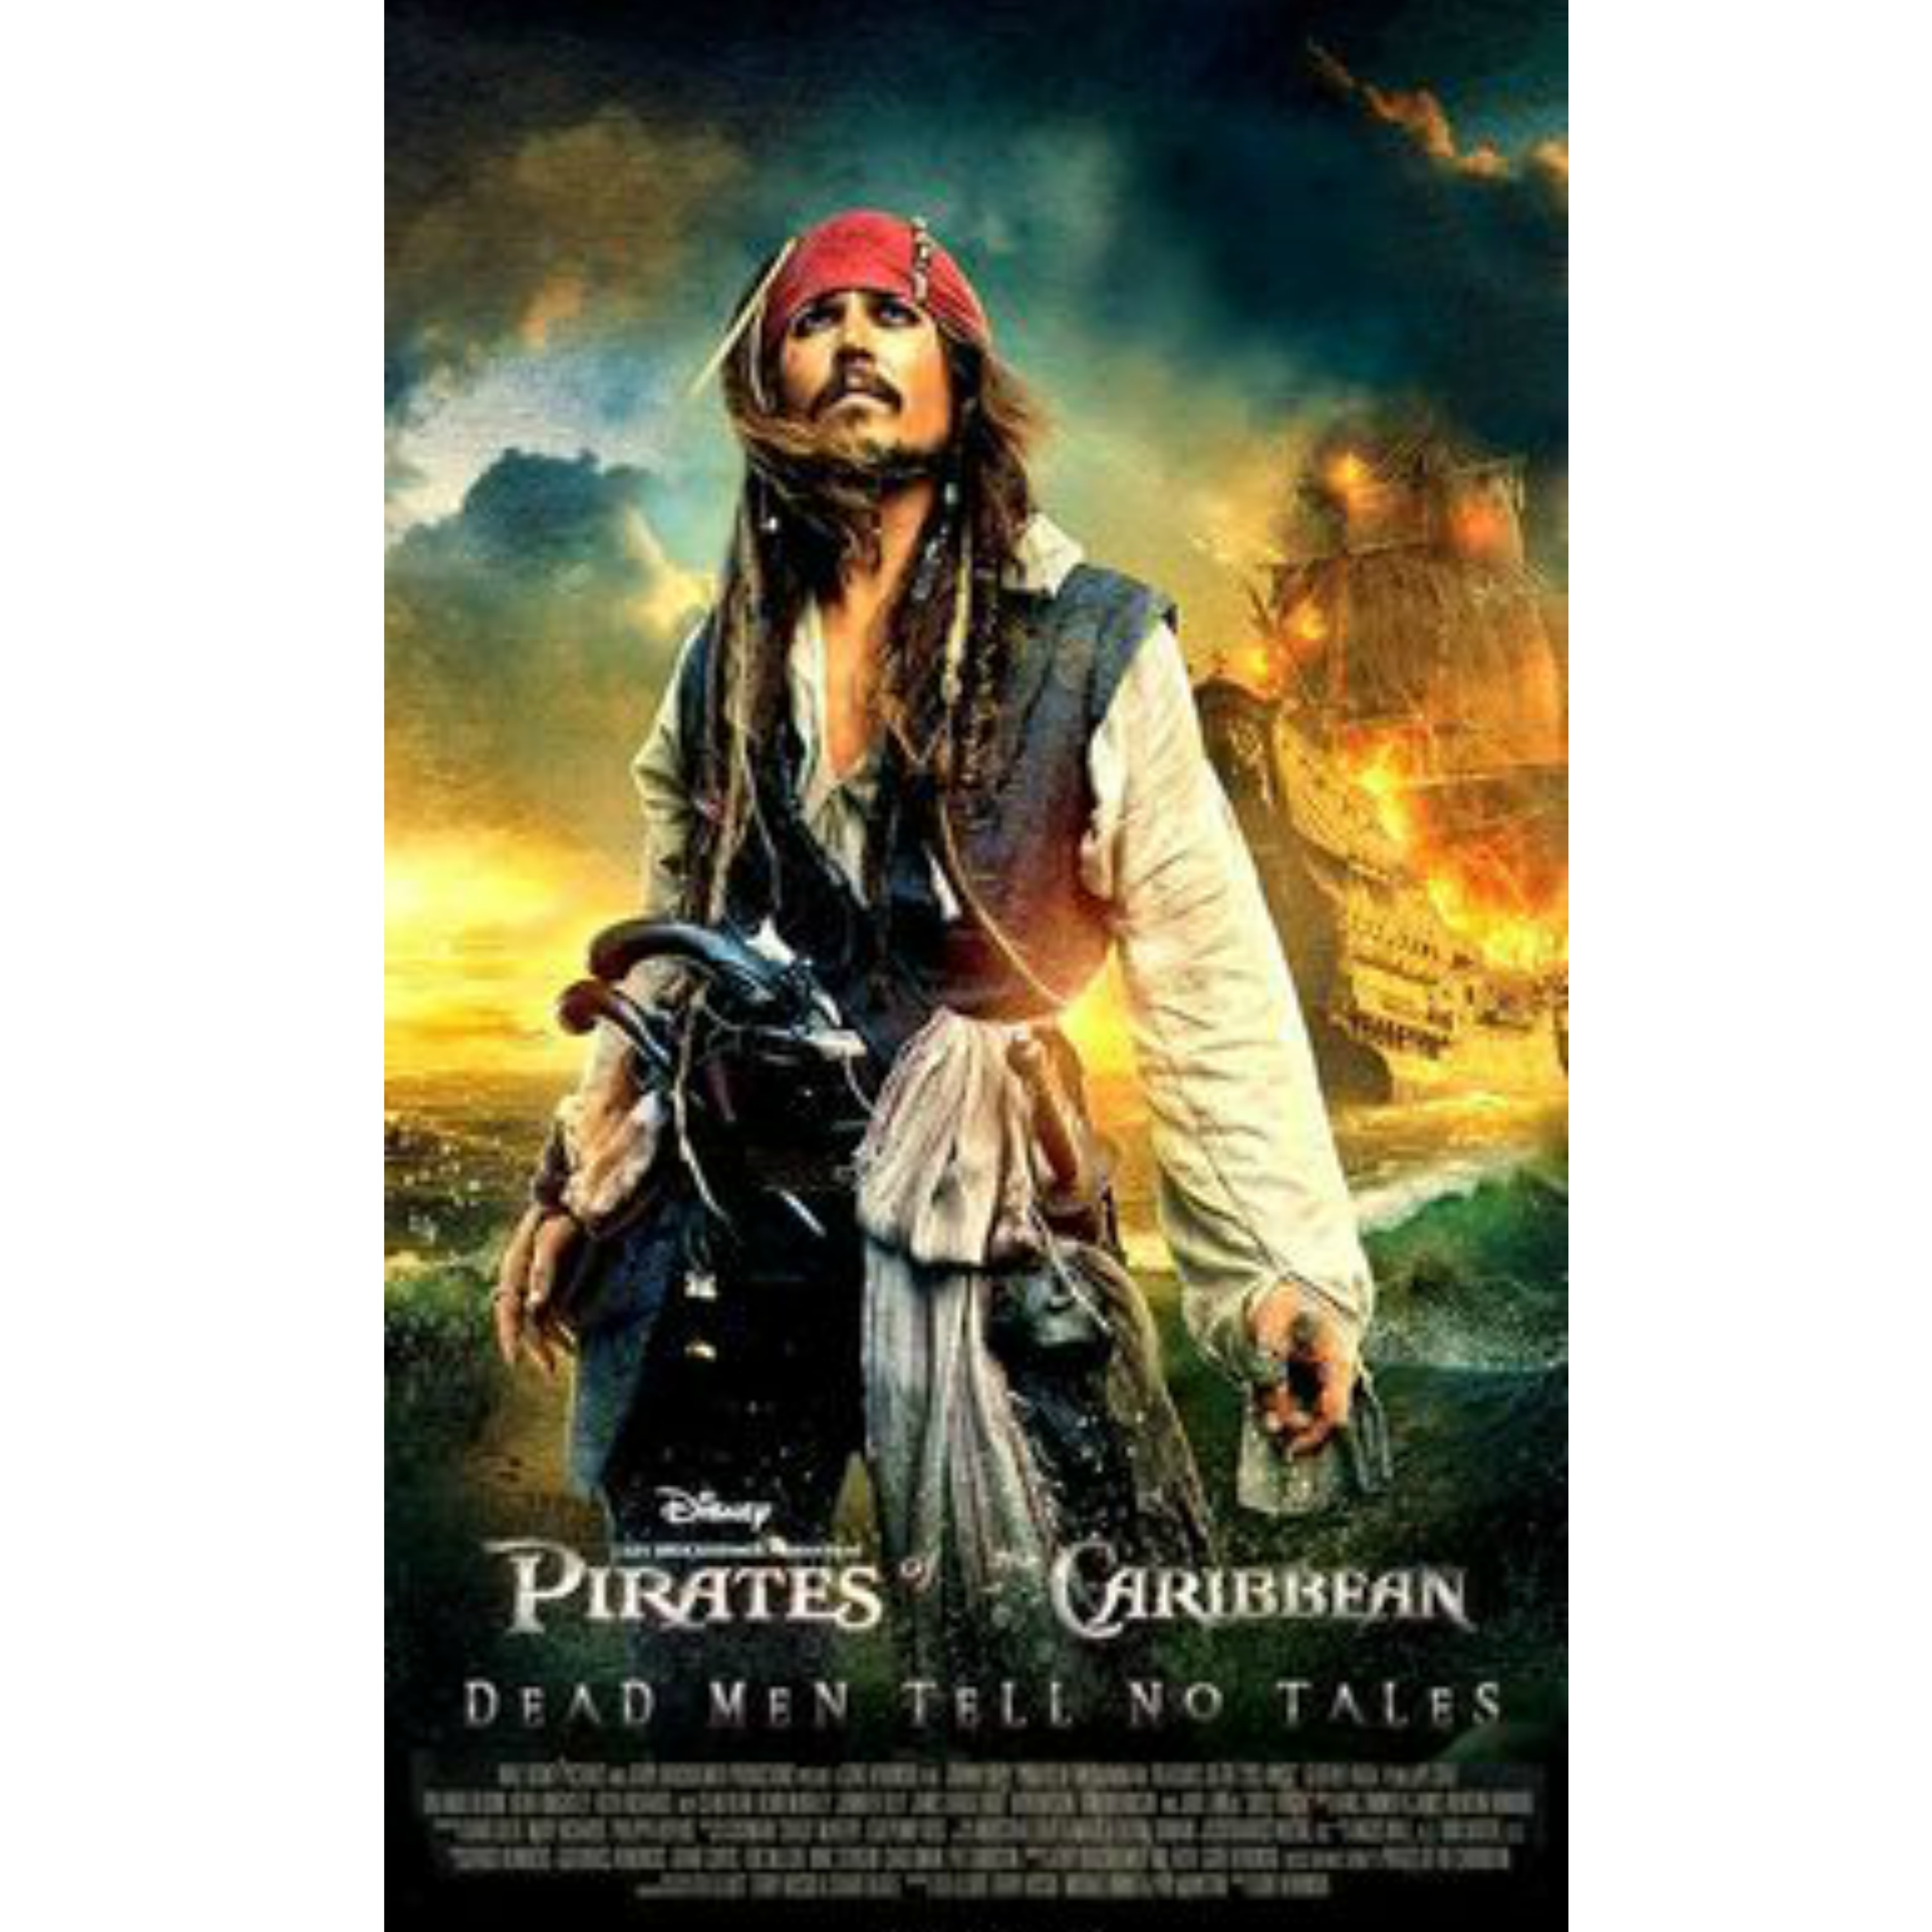 New pirates of the carribbean movie